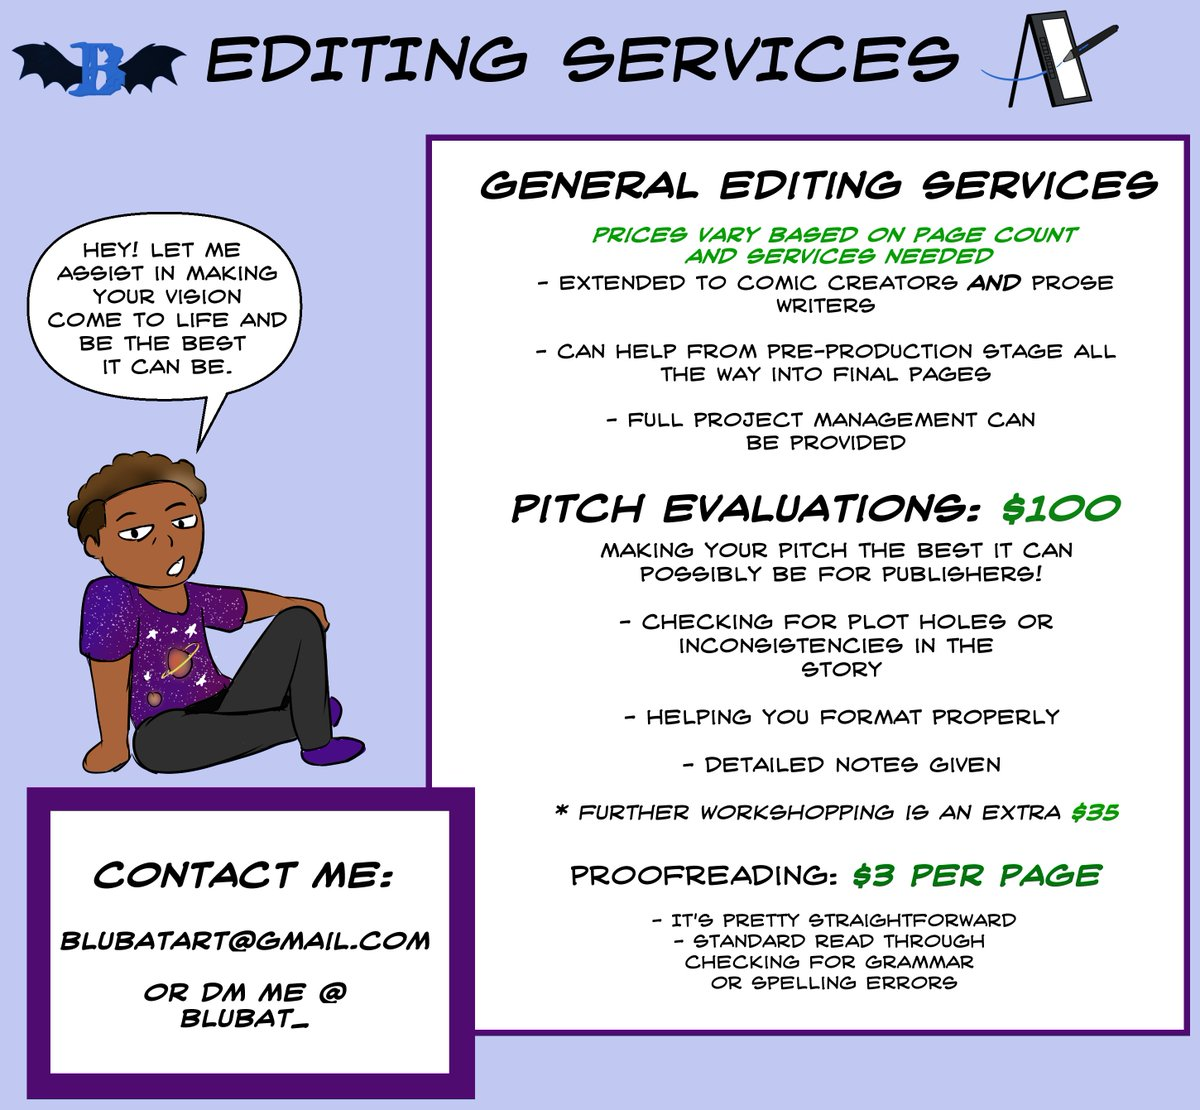 Alright comic creators and prose writers, I'm available for freelance editing! Get the assist you need while you can! Email me at blubatart [@] https://t.co/FzYOkufe5v or DM me! https://t.co/qa7mMgidIL